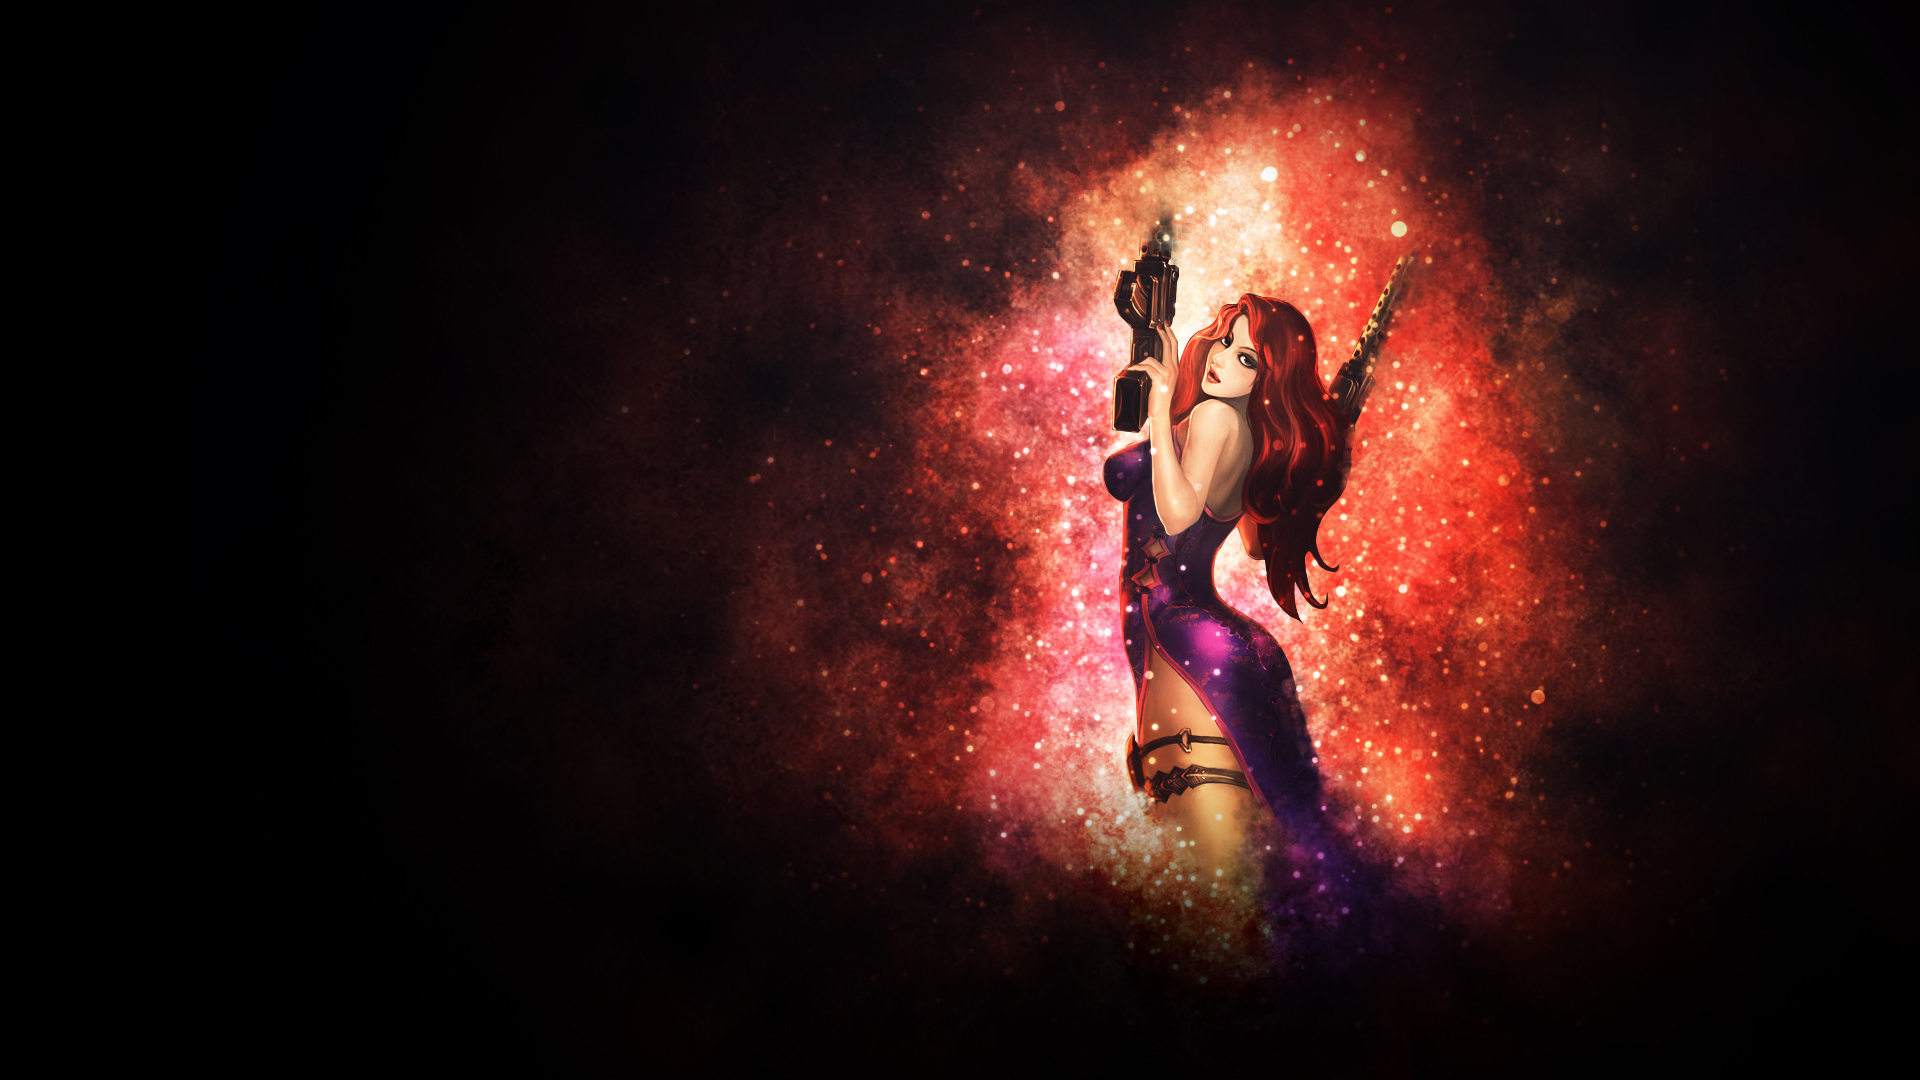 Secret Agent Miss Fortune Chinese wallpaper